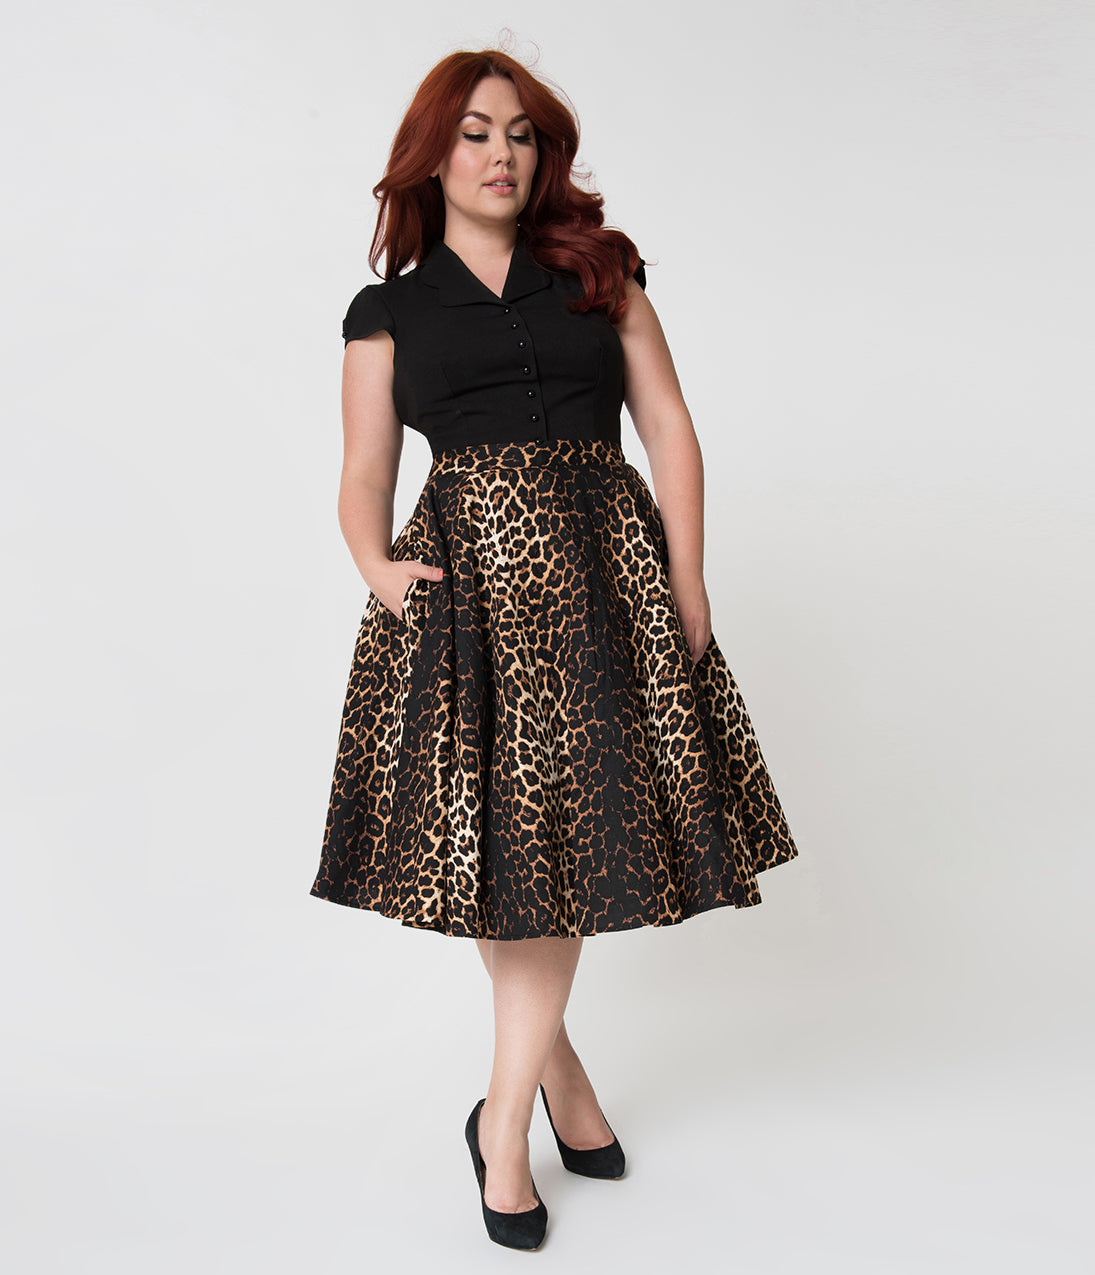 Plus Size Vintage Style Retro Clothing